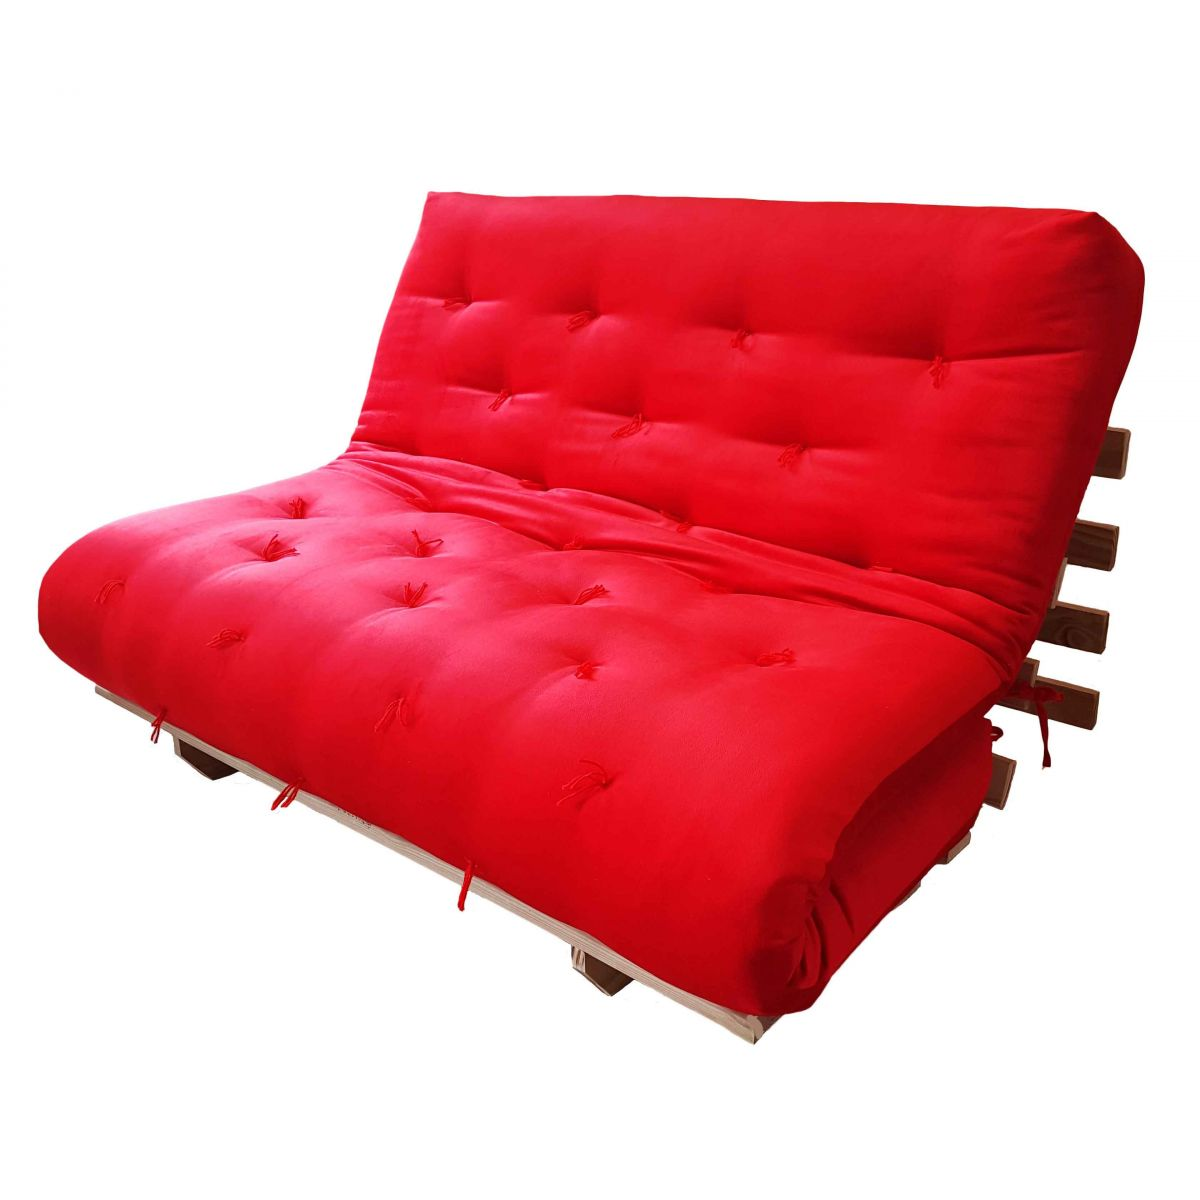 Sofa cama futon for Sofa cama 1 persona